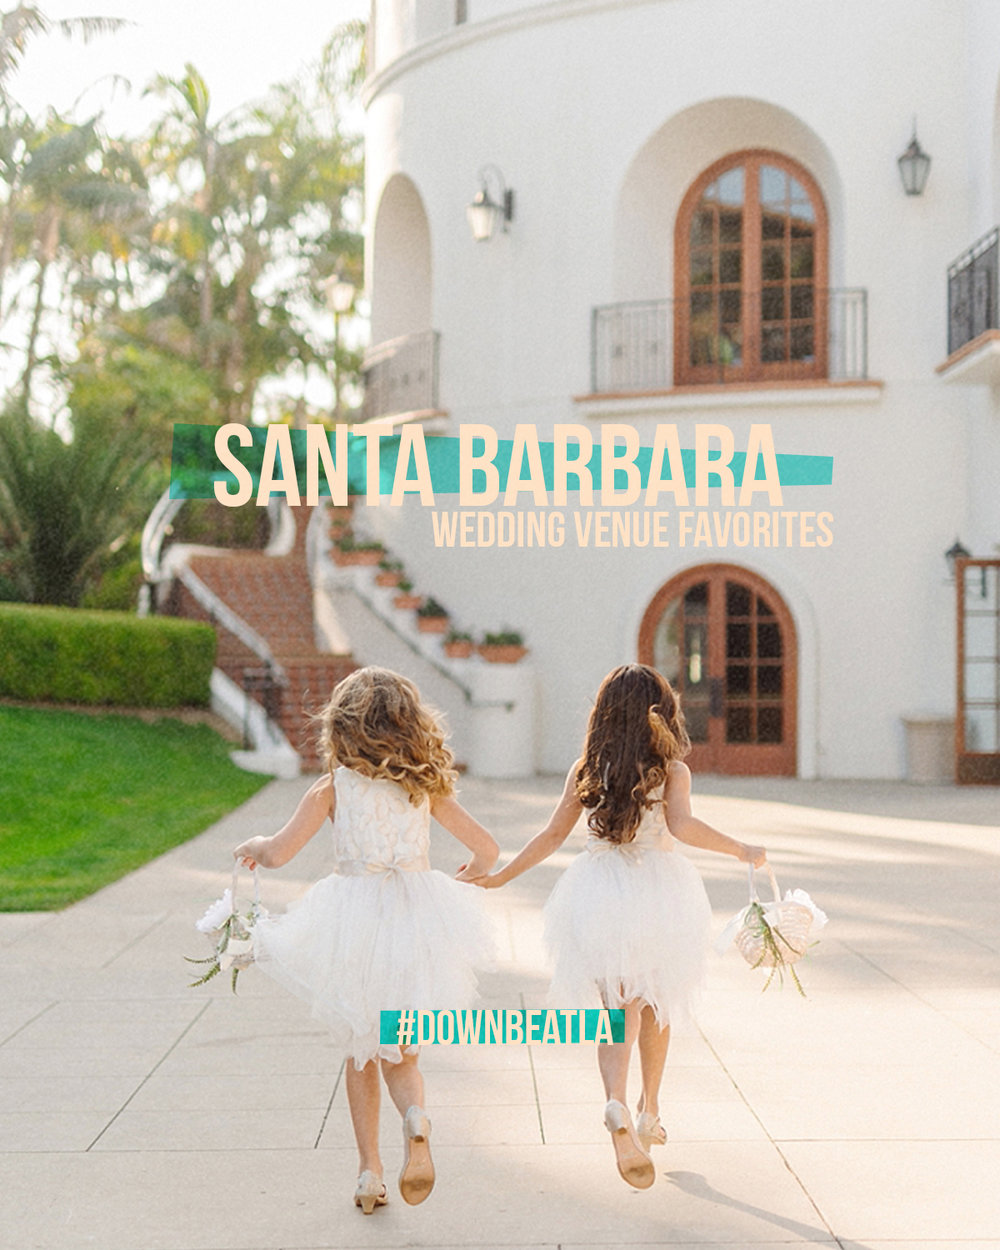 Santa Barbara Venue Favorites-Insta.jpg